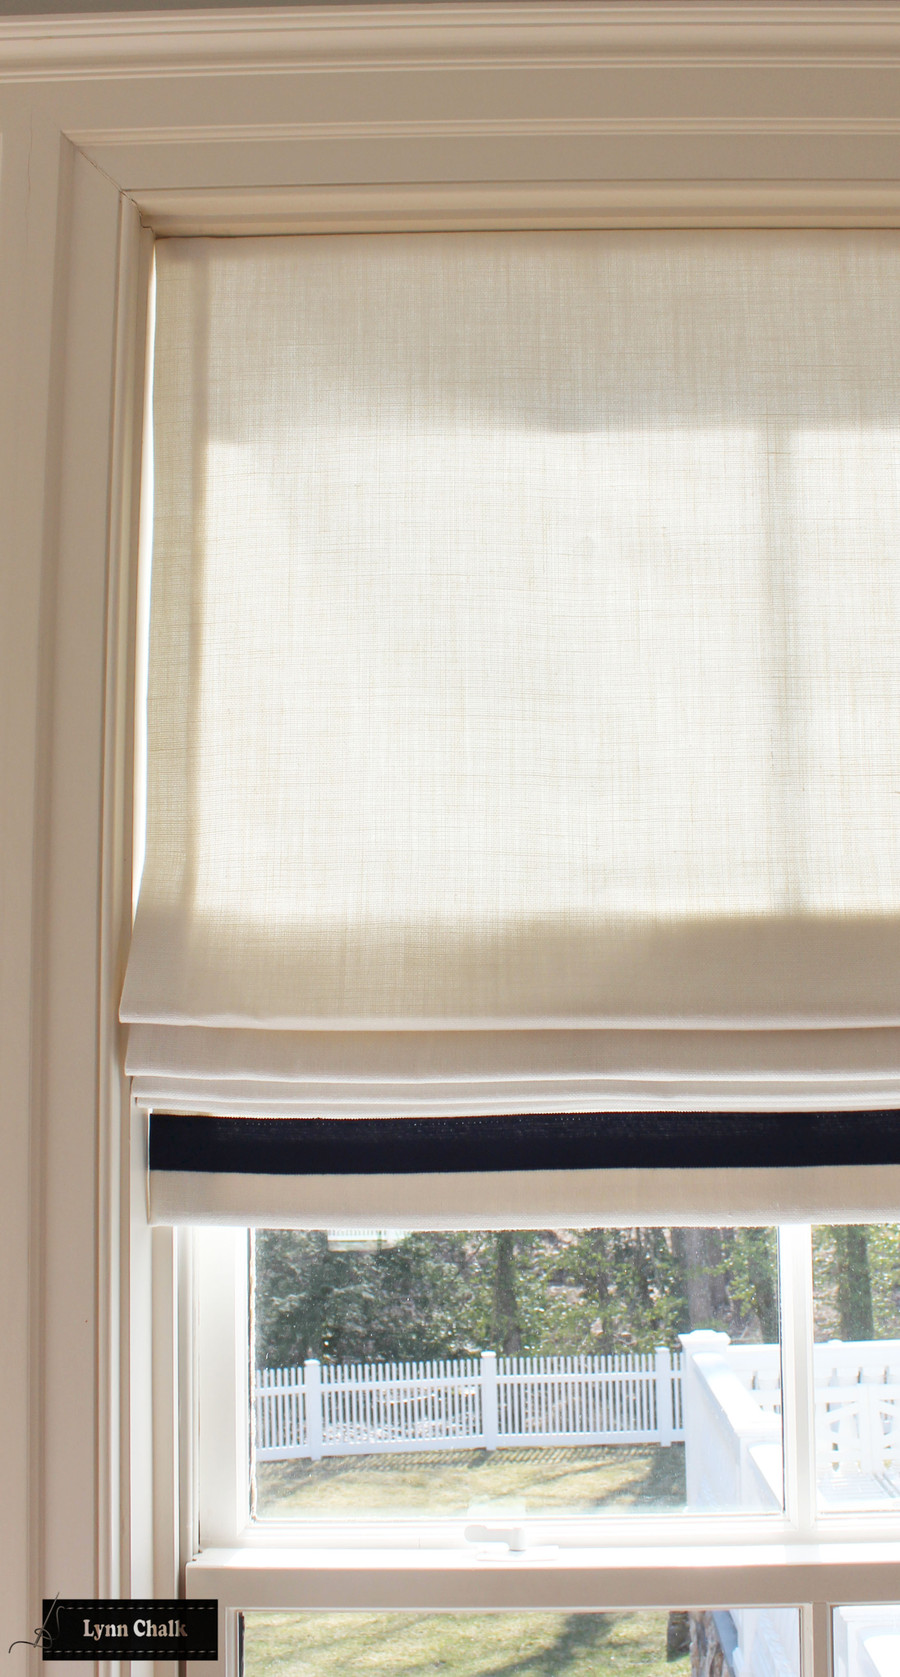 Roman Shades in Schumacher Piet Performance Blanc with Samuel & Sons Grosgrain Ribbon trim in Ink